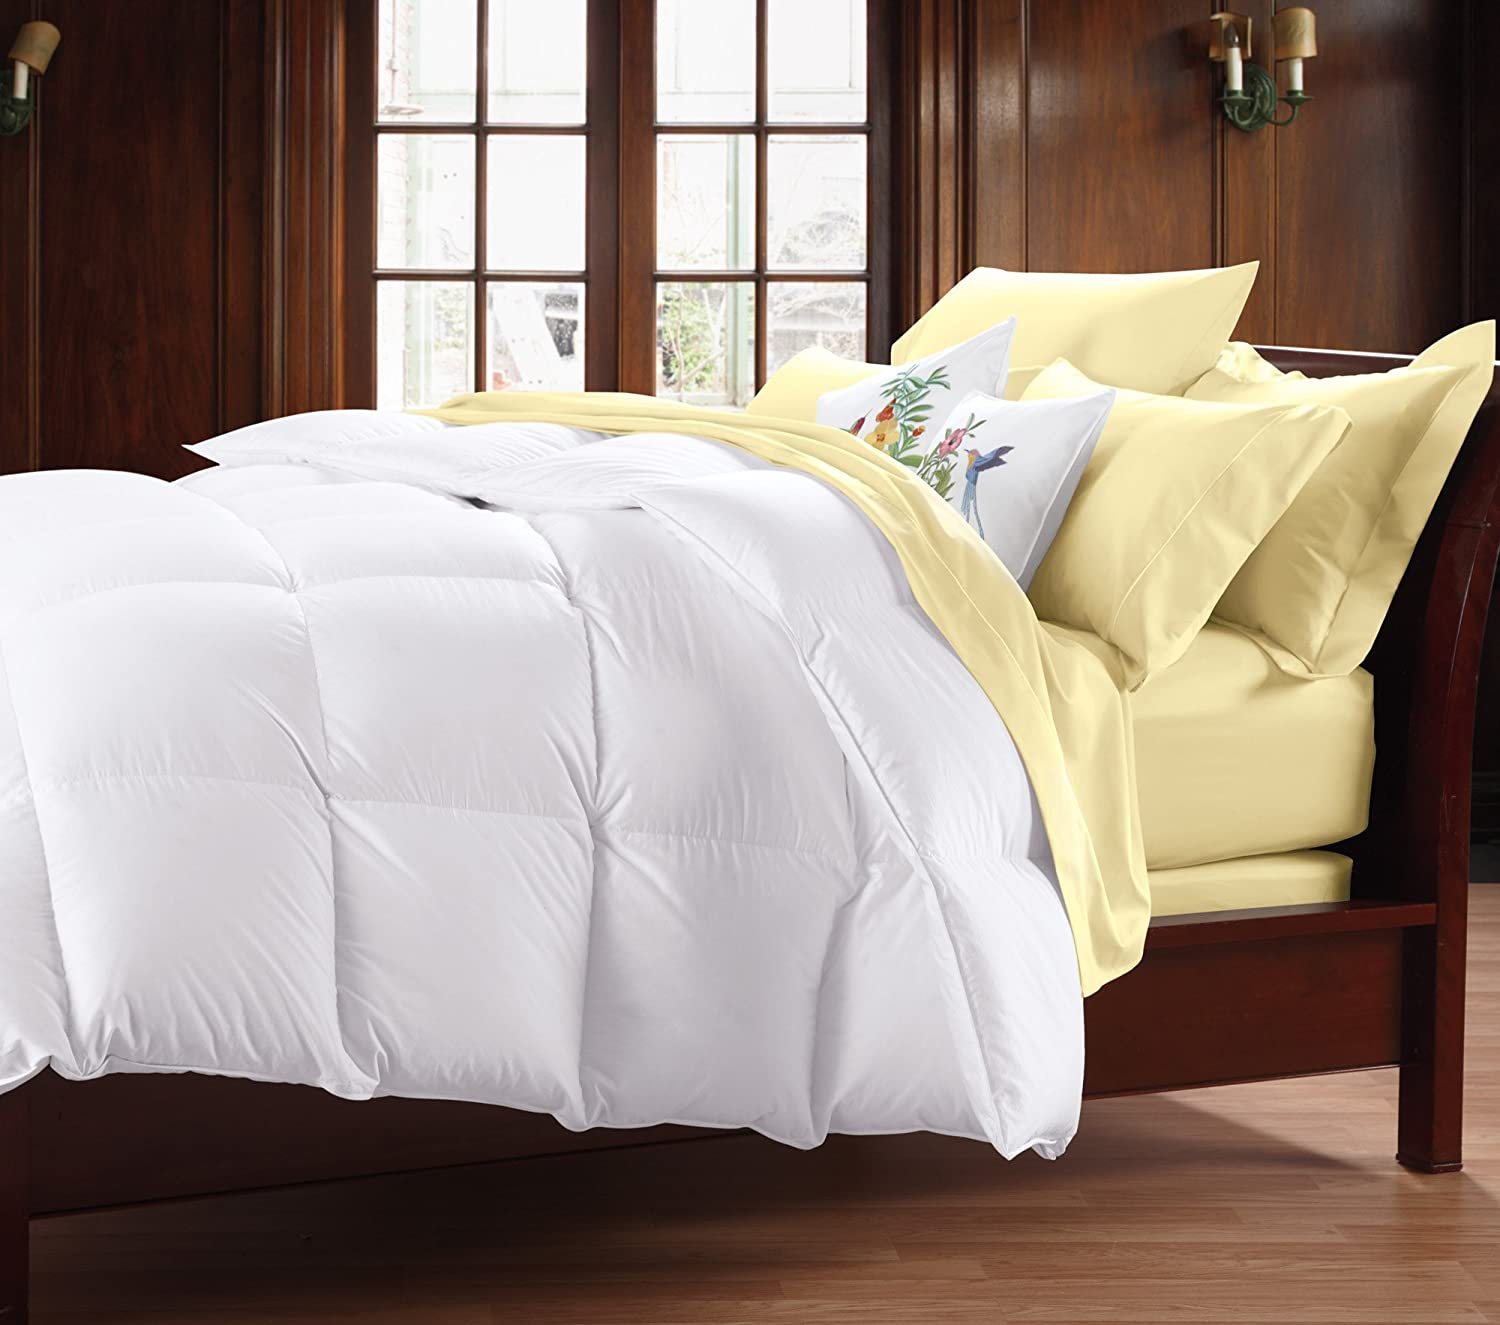 amazoncom cuddledown 400tc down comforter over size king summer white home u0026 kitchen